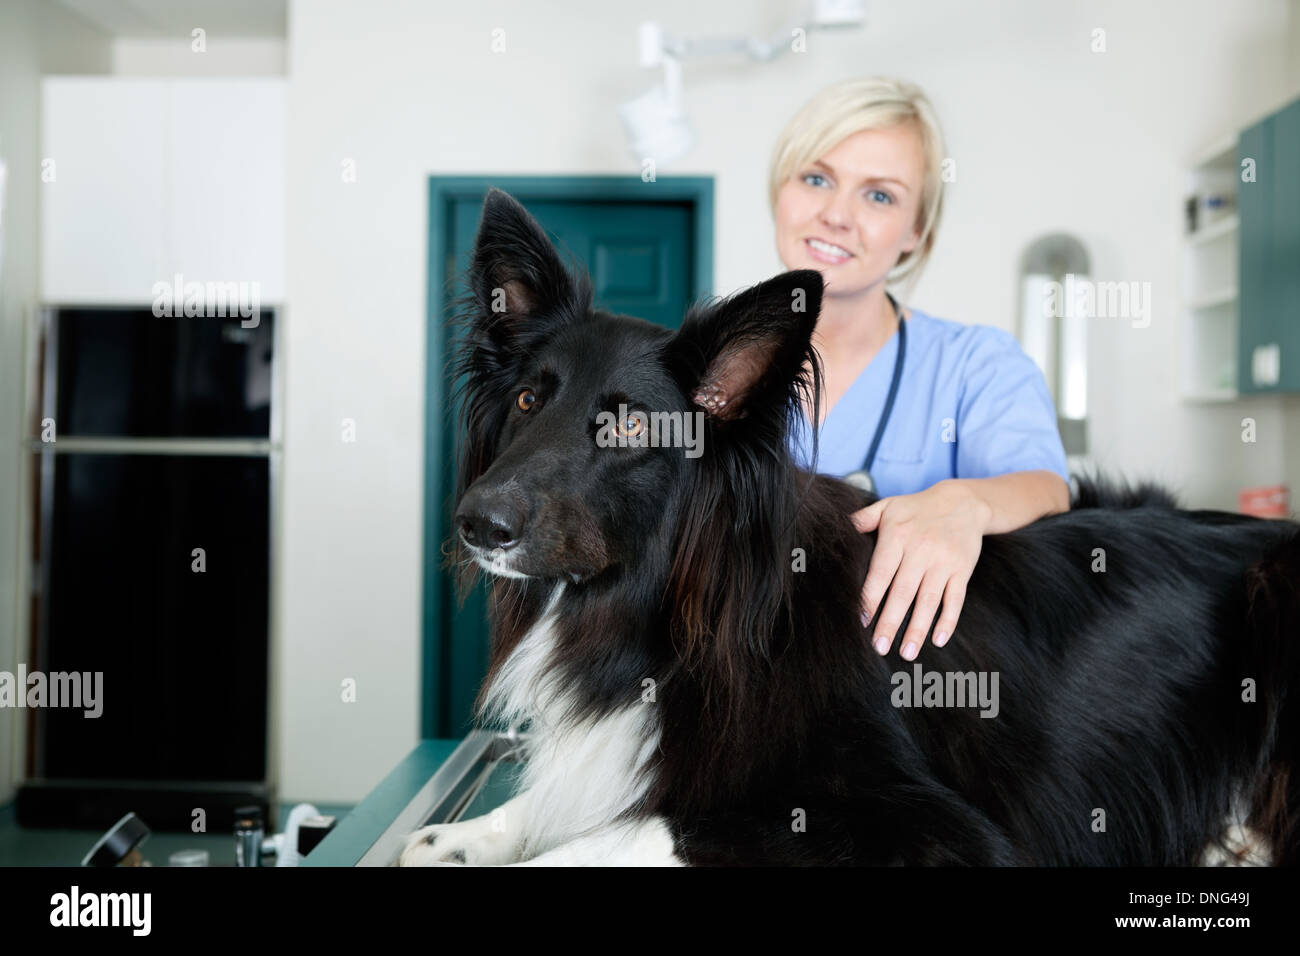 Female Veterinarian Doctor With A Dog At Clinic - Stock Image